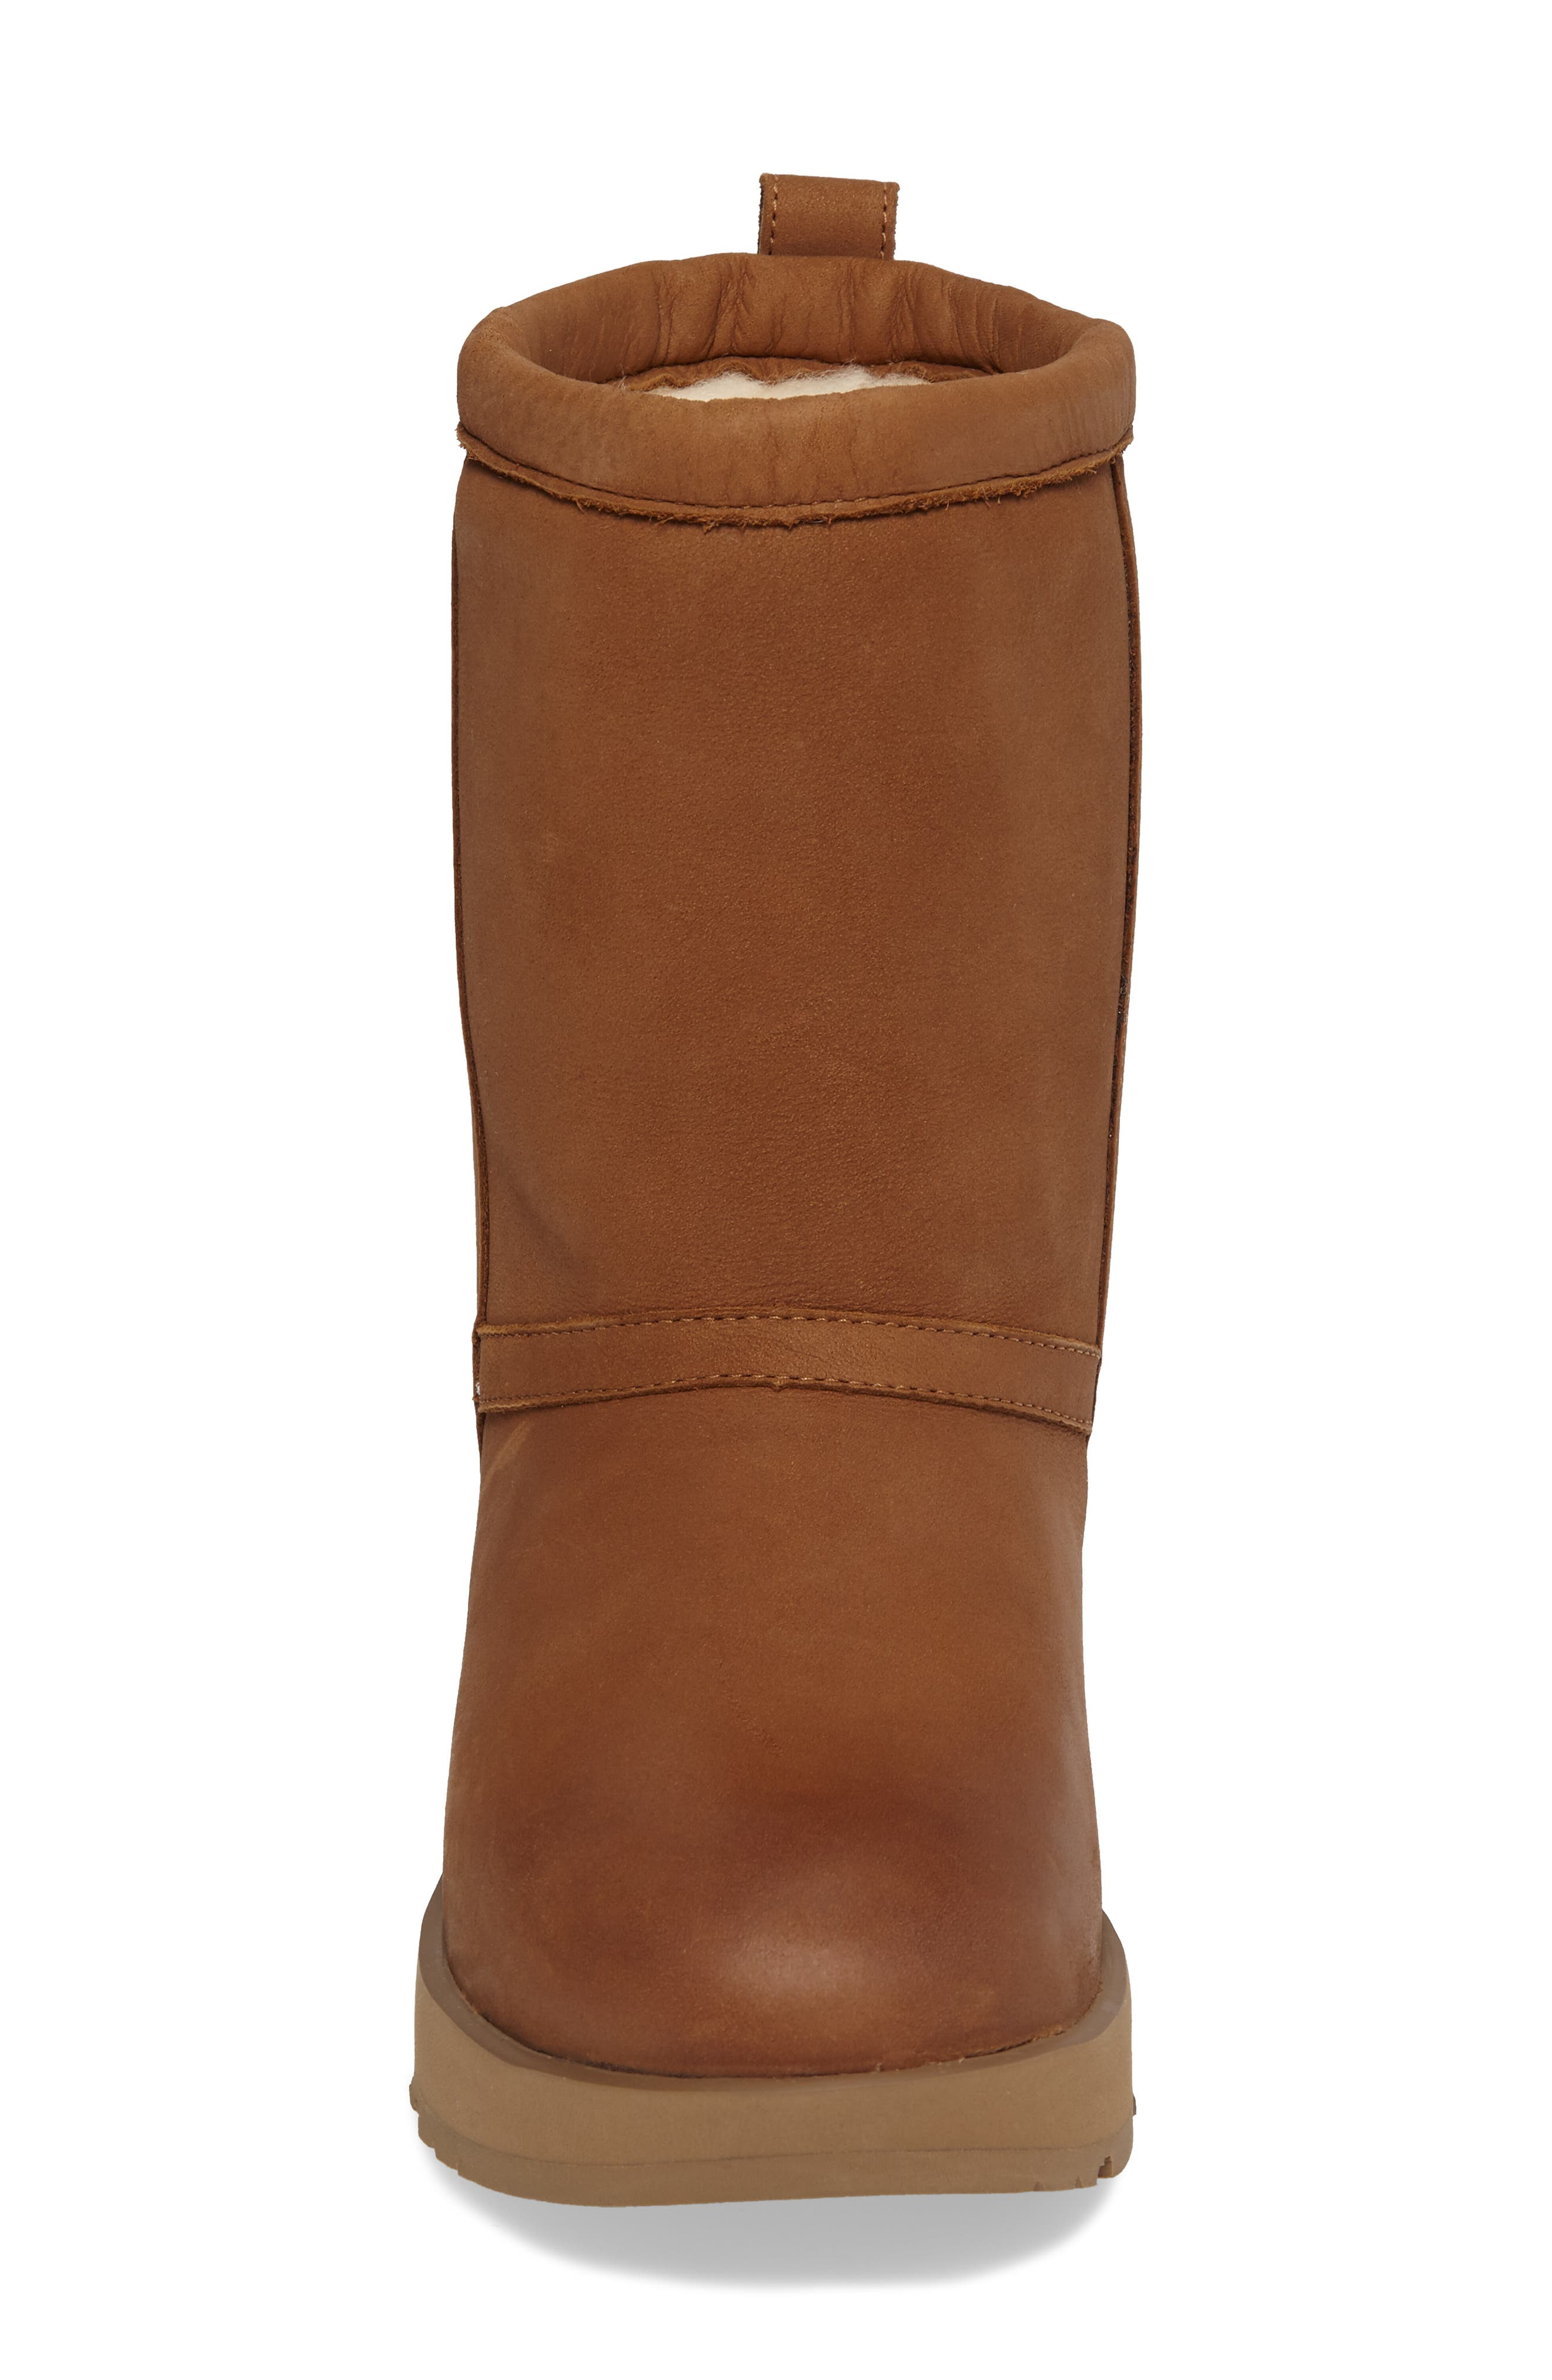 Classic Genuine Shearling Lined Short Waterproof Boot,                             Alternate thumbnail 4, color,                             Chestnut Leather